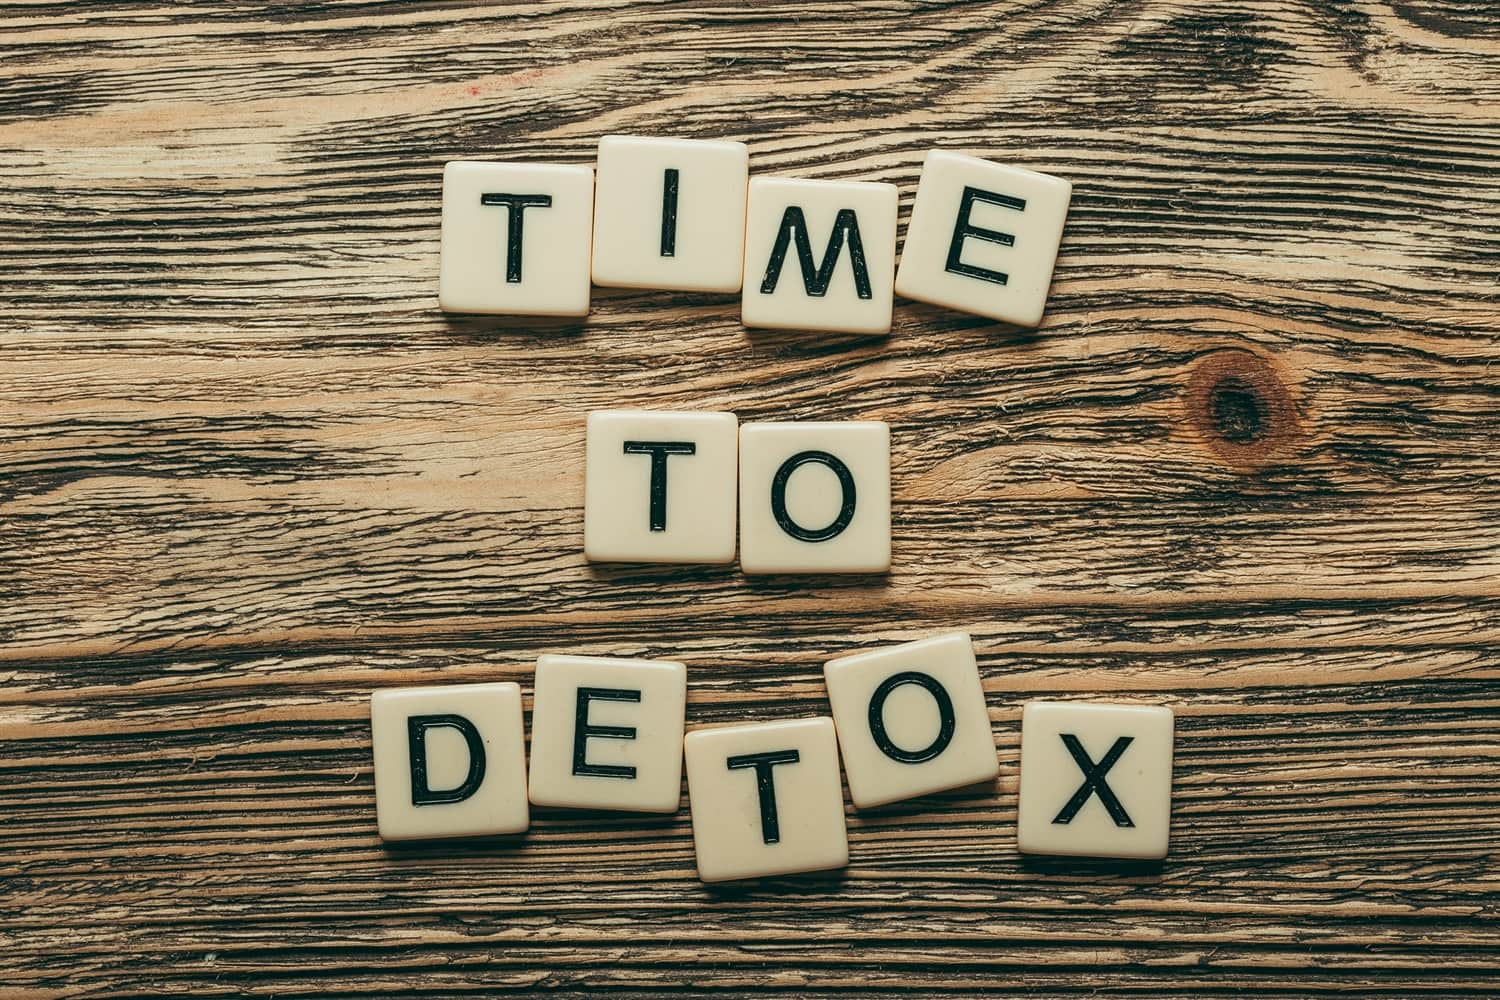 Detox Now On December 21st! Why Weight?